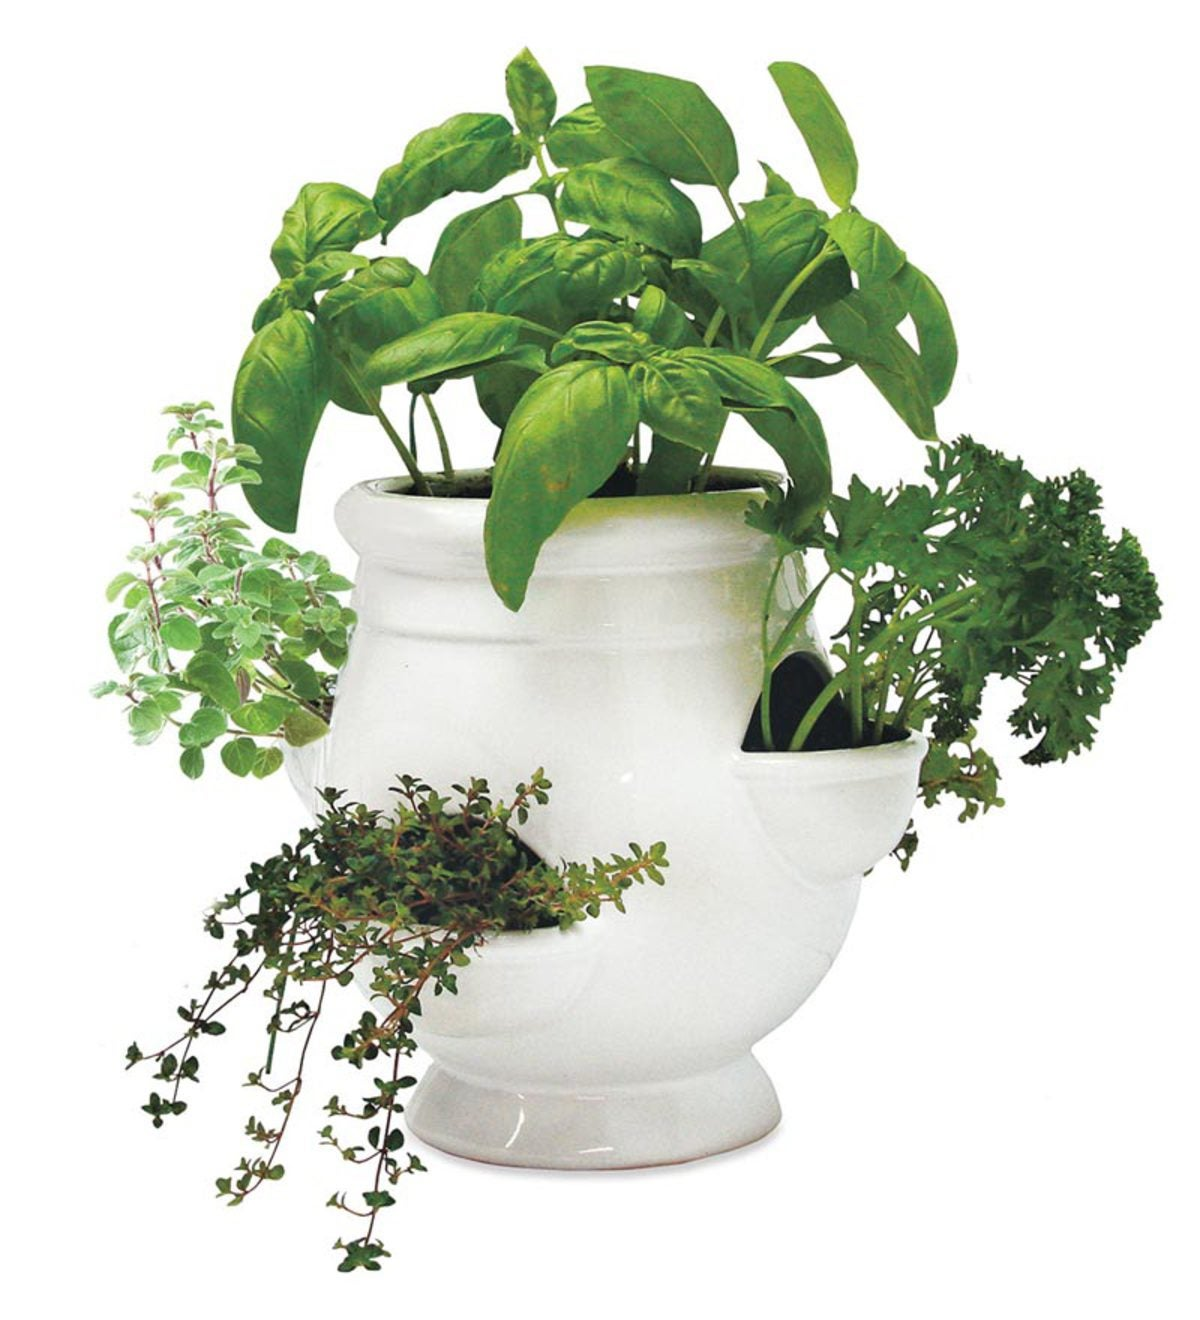 Grow Your Own Herbs Kit with White Ceramic Pot